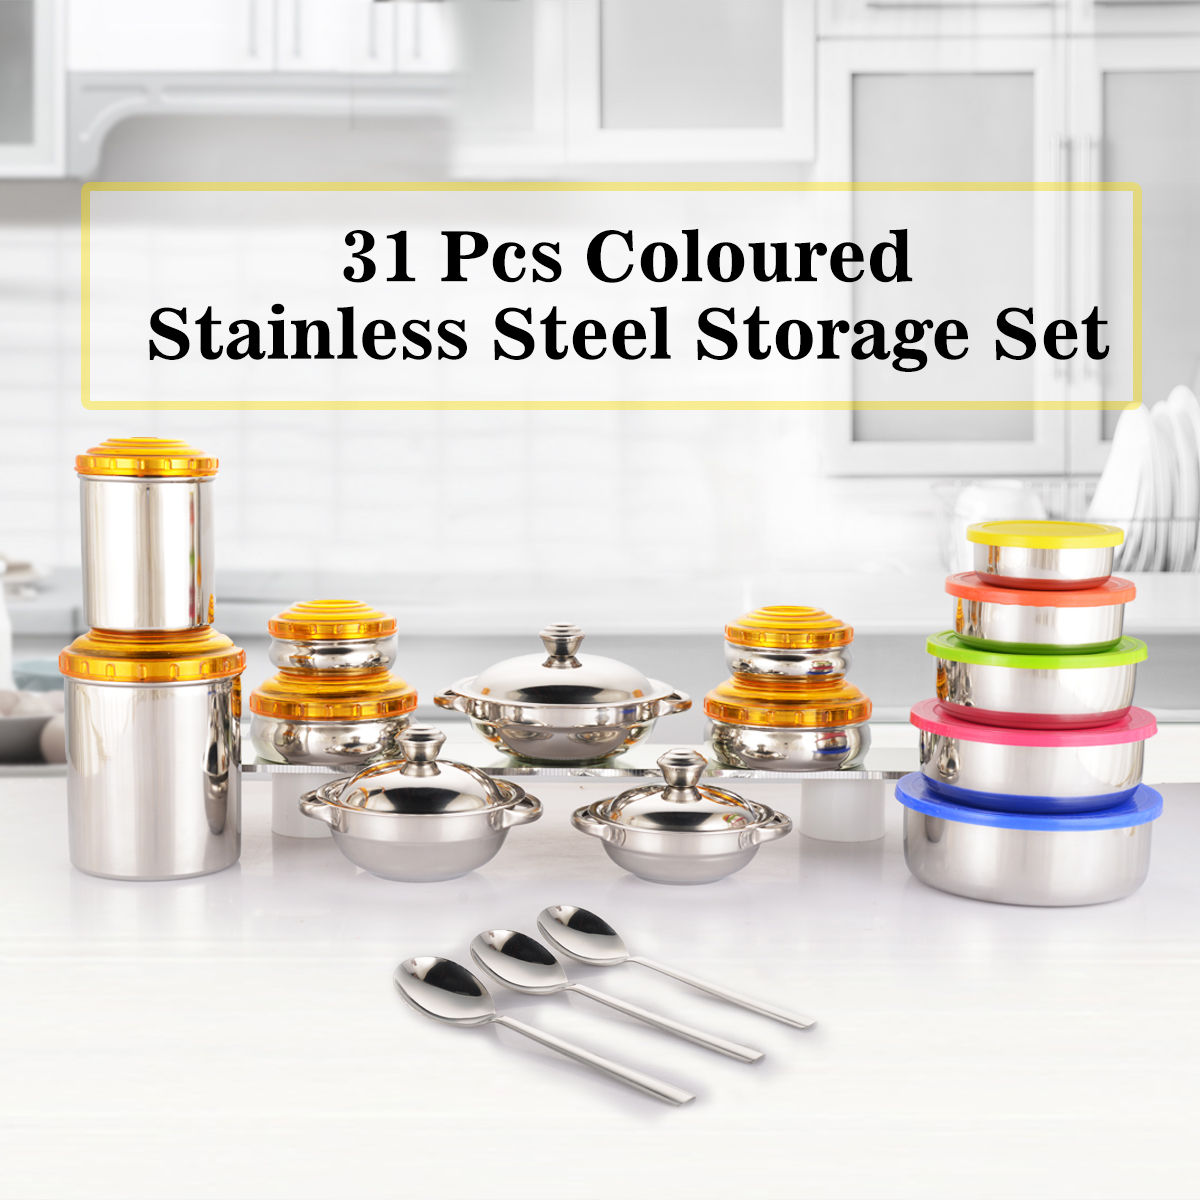 Buy 31 Pcs Coloured Stainless Steel Storage Set Online At Best Price